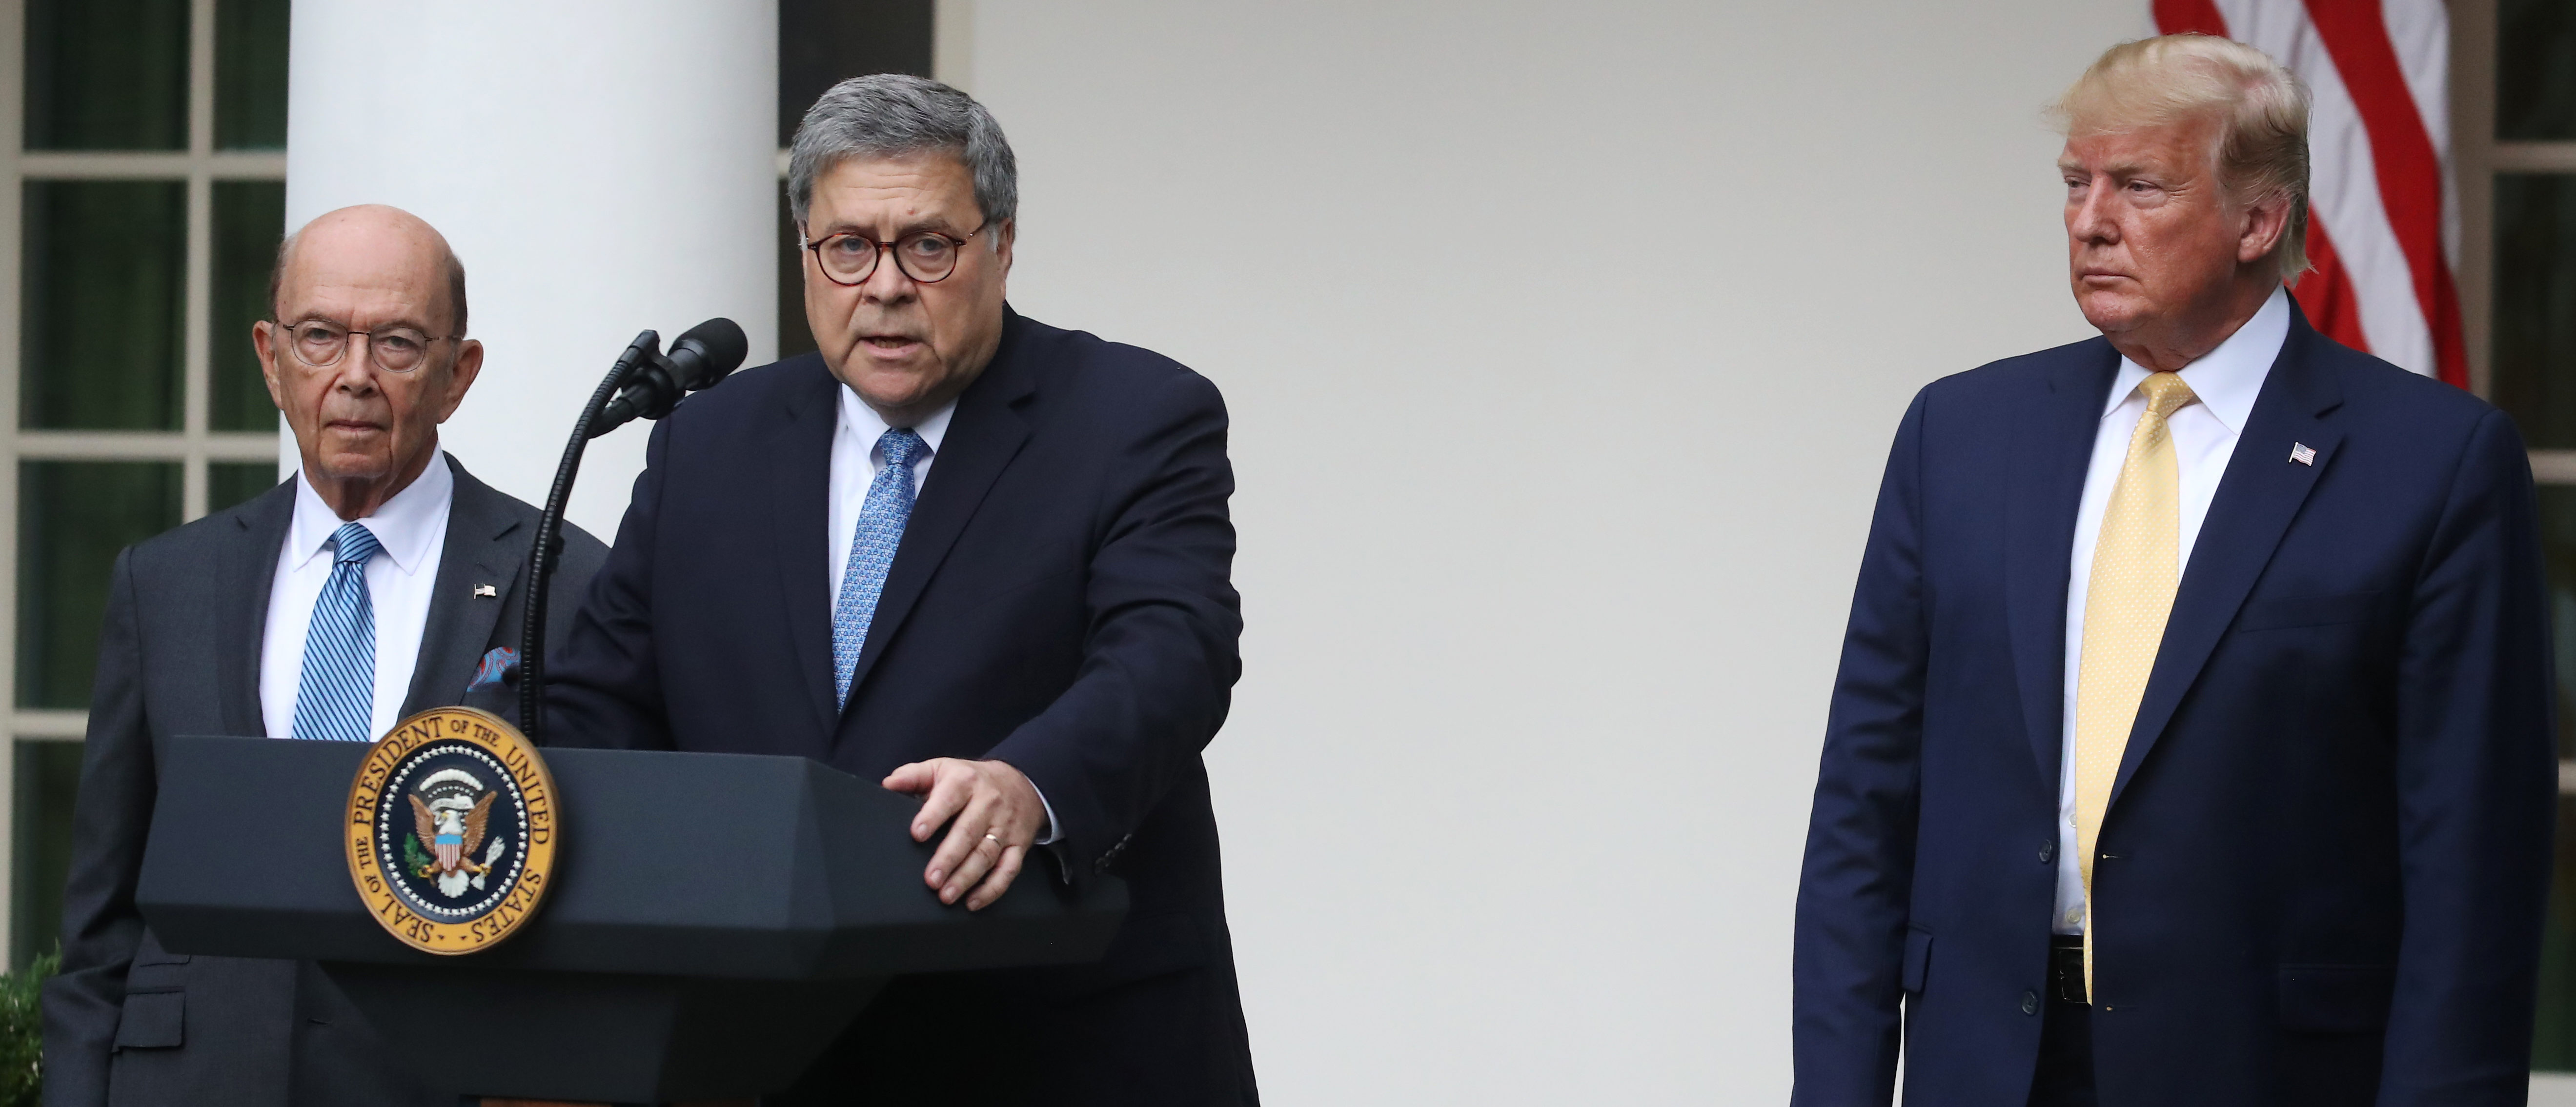 Attorney General William Barr speaks during a press conference on the census with President Donald Trump and Secretary of Commerce Wilbur Ross in the Rose Garden of the White House on July 11, 2019. (Mark Wilson/Getty Images)